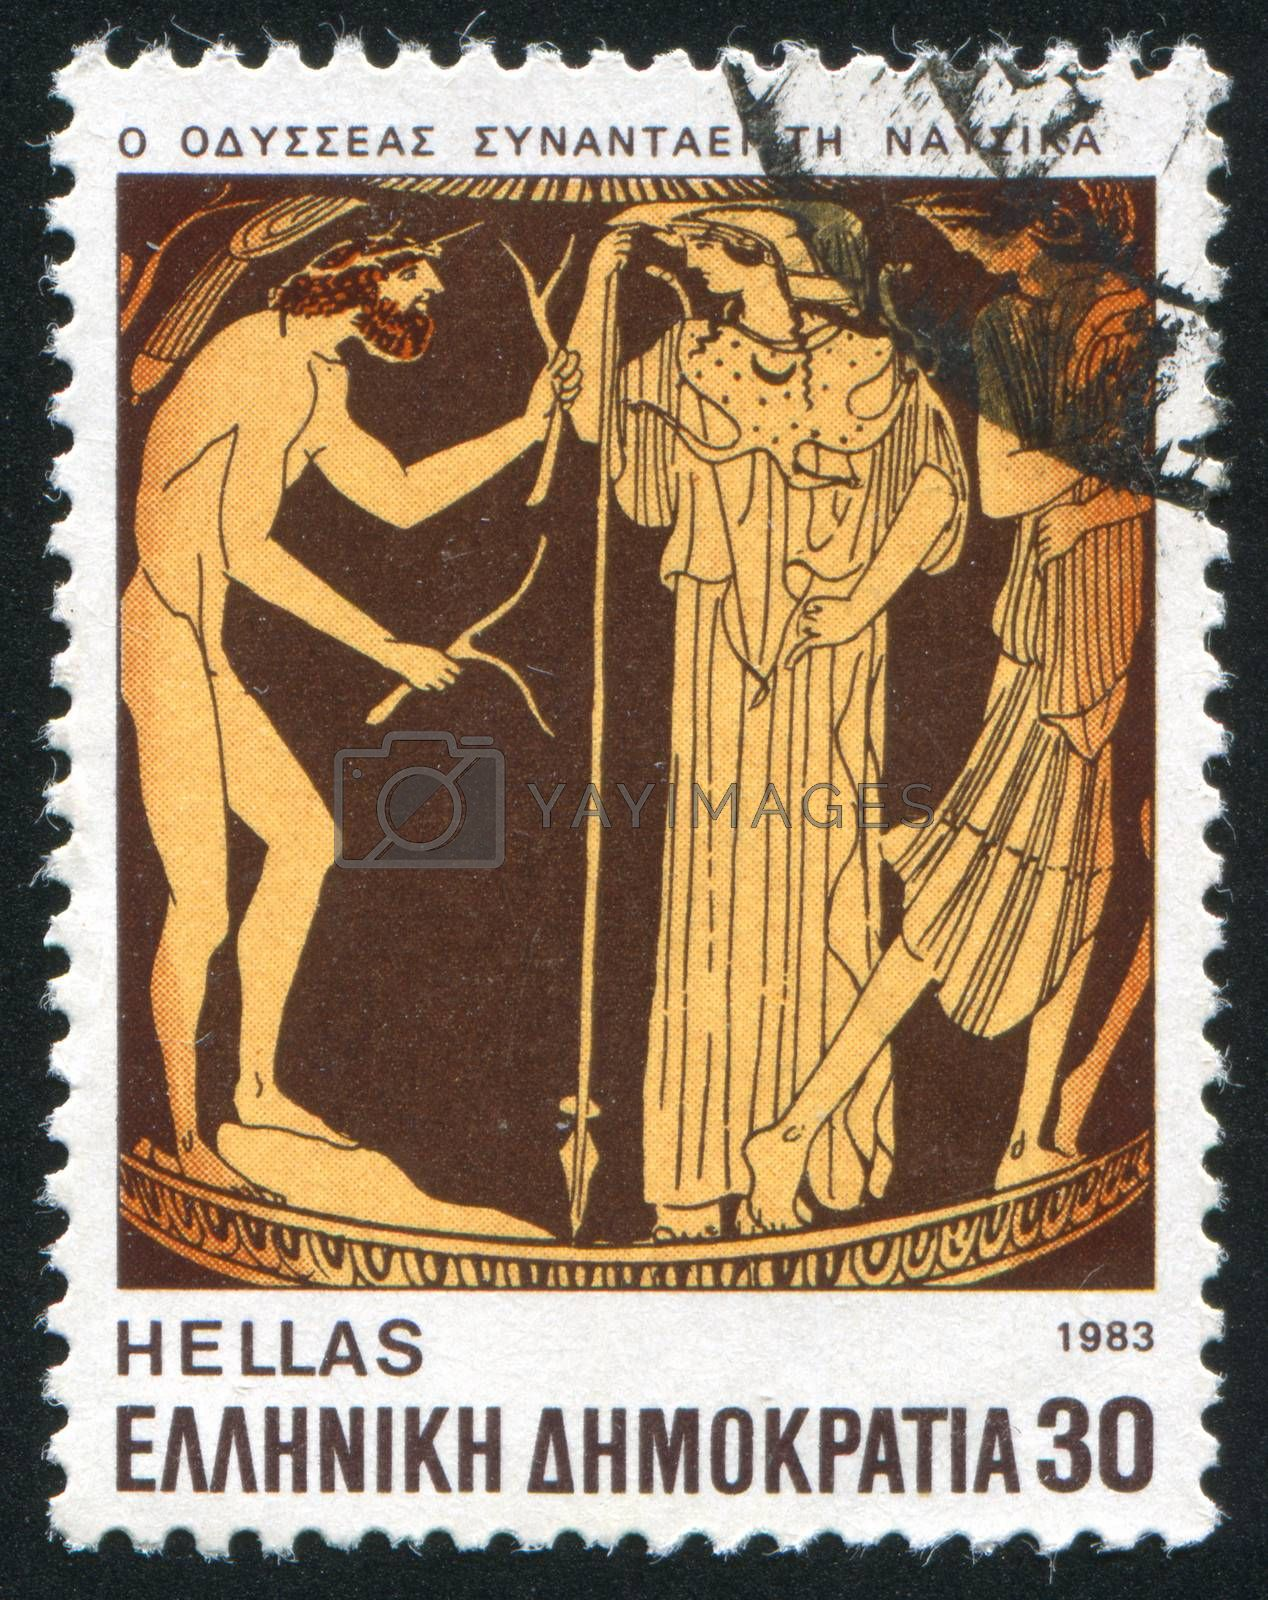 GREECE - CIRCA 1983: stamp printed by Greece, shows Ulysses meeting with Nausica, circa 1983